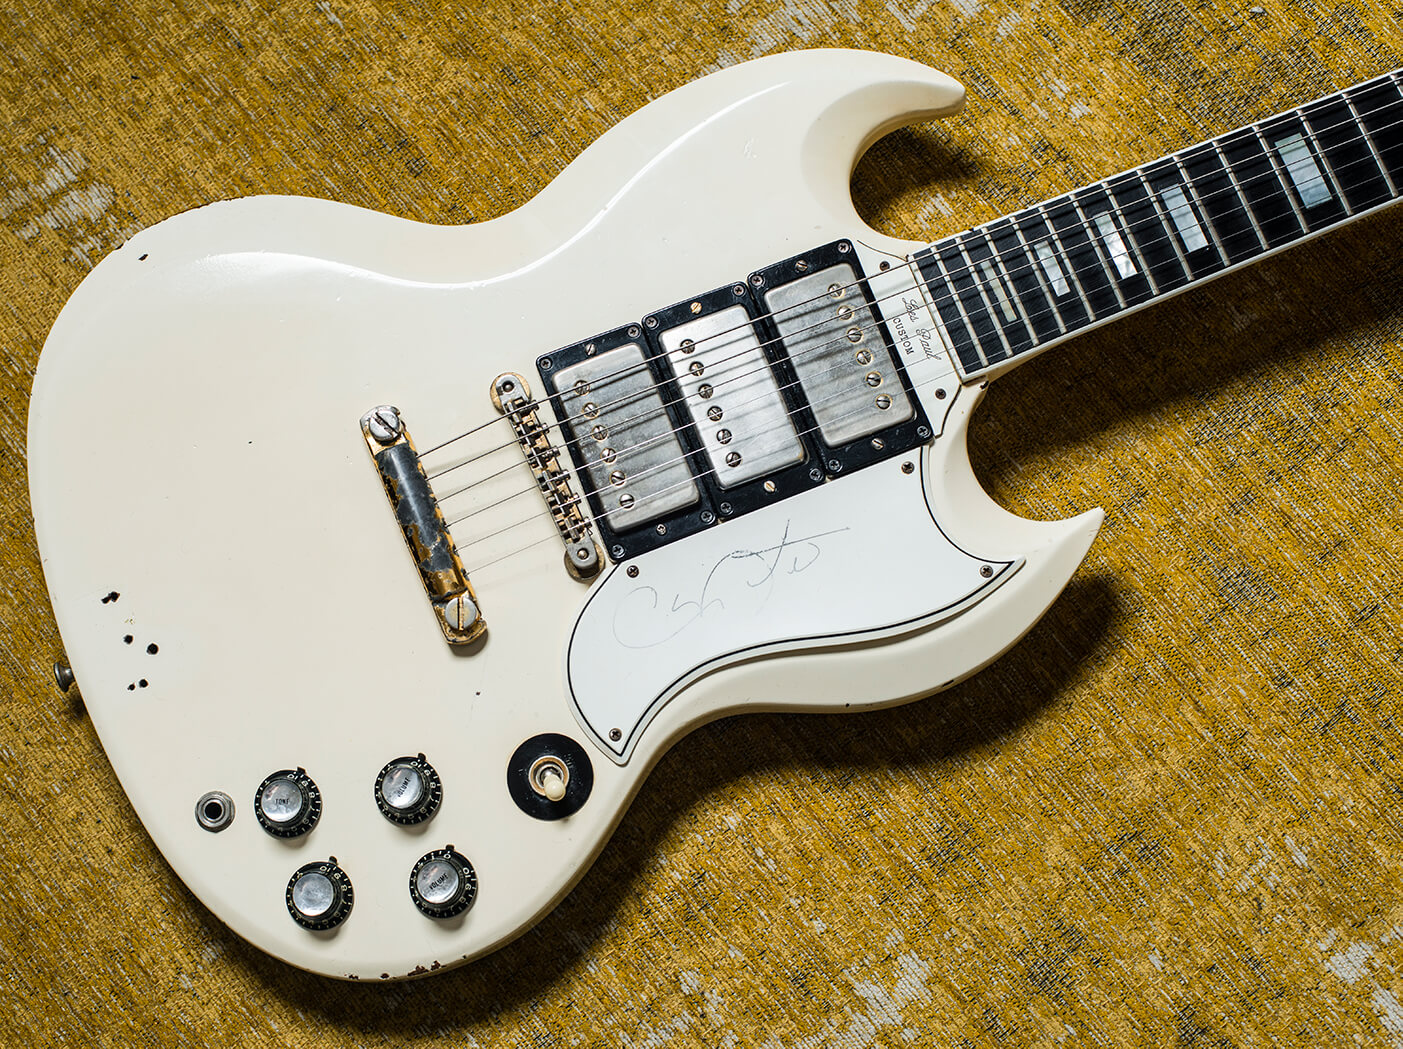 The oral history of the Gibson SG - Guitar com | All Things